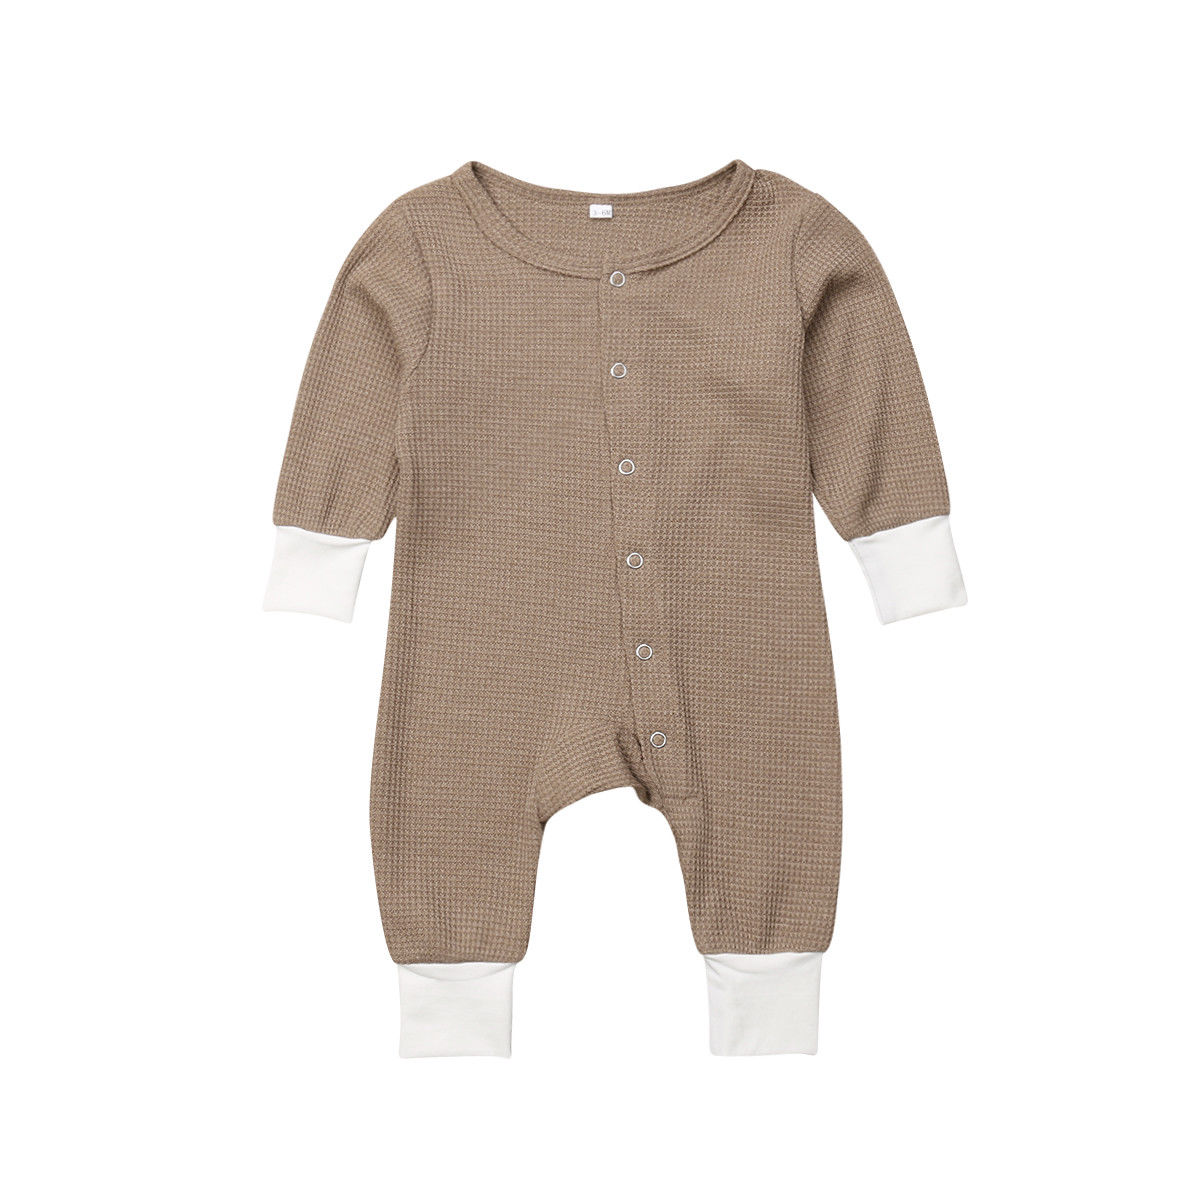 Infant Kids Toddler Baby Girl Boy Clothes Knitted Romper Jumpsuit Outfit Autumn Casual Baby Clothing Rompers Choice Materials